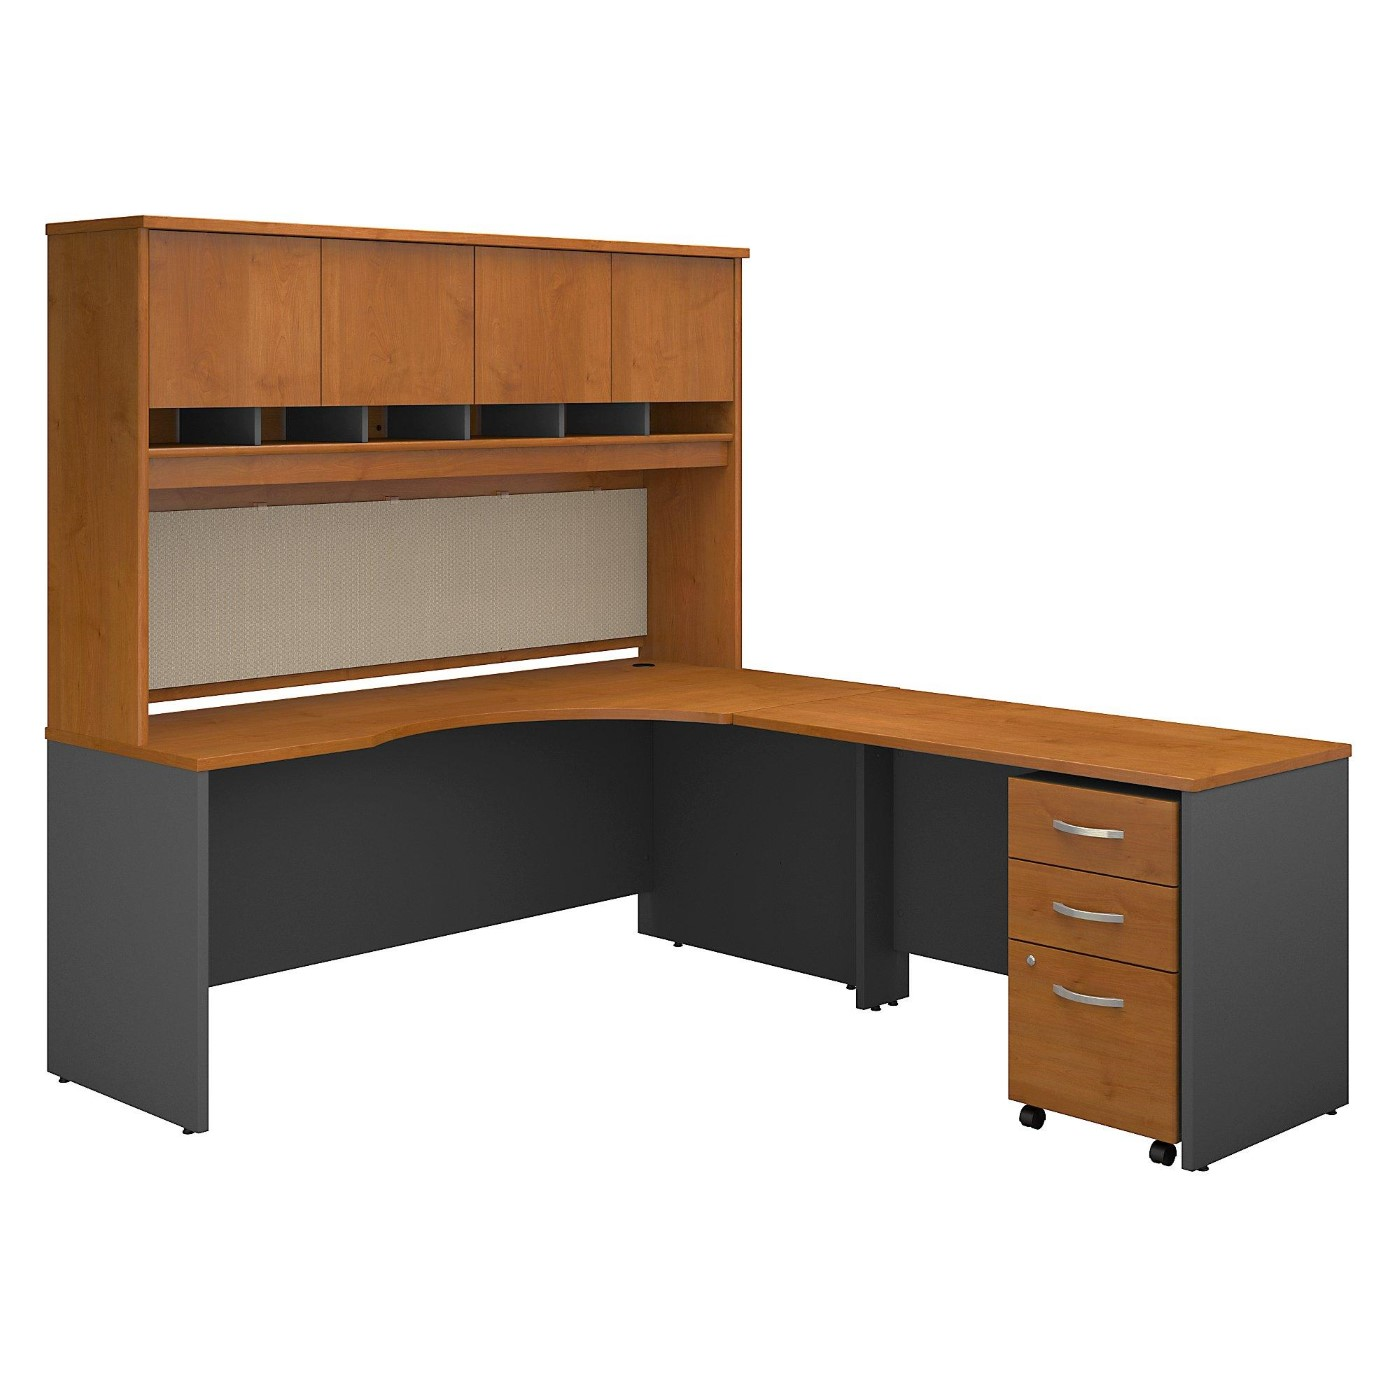 <font color=#c60><b>BUSH BUSINESS FURNITURE SERIES C 72W LEFT HANDED CORNER DESK WITH HUTCH AND MOBILE FILE CABINET. FREE SHIPPING</font></b></font></b>